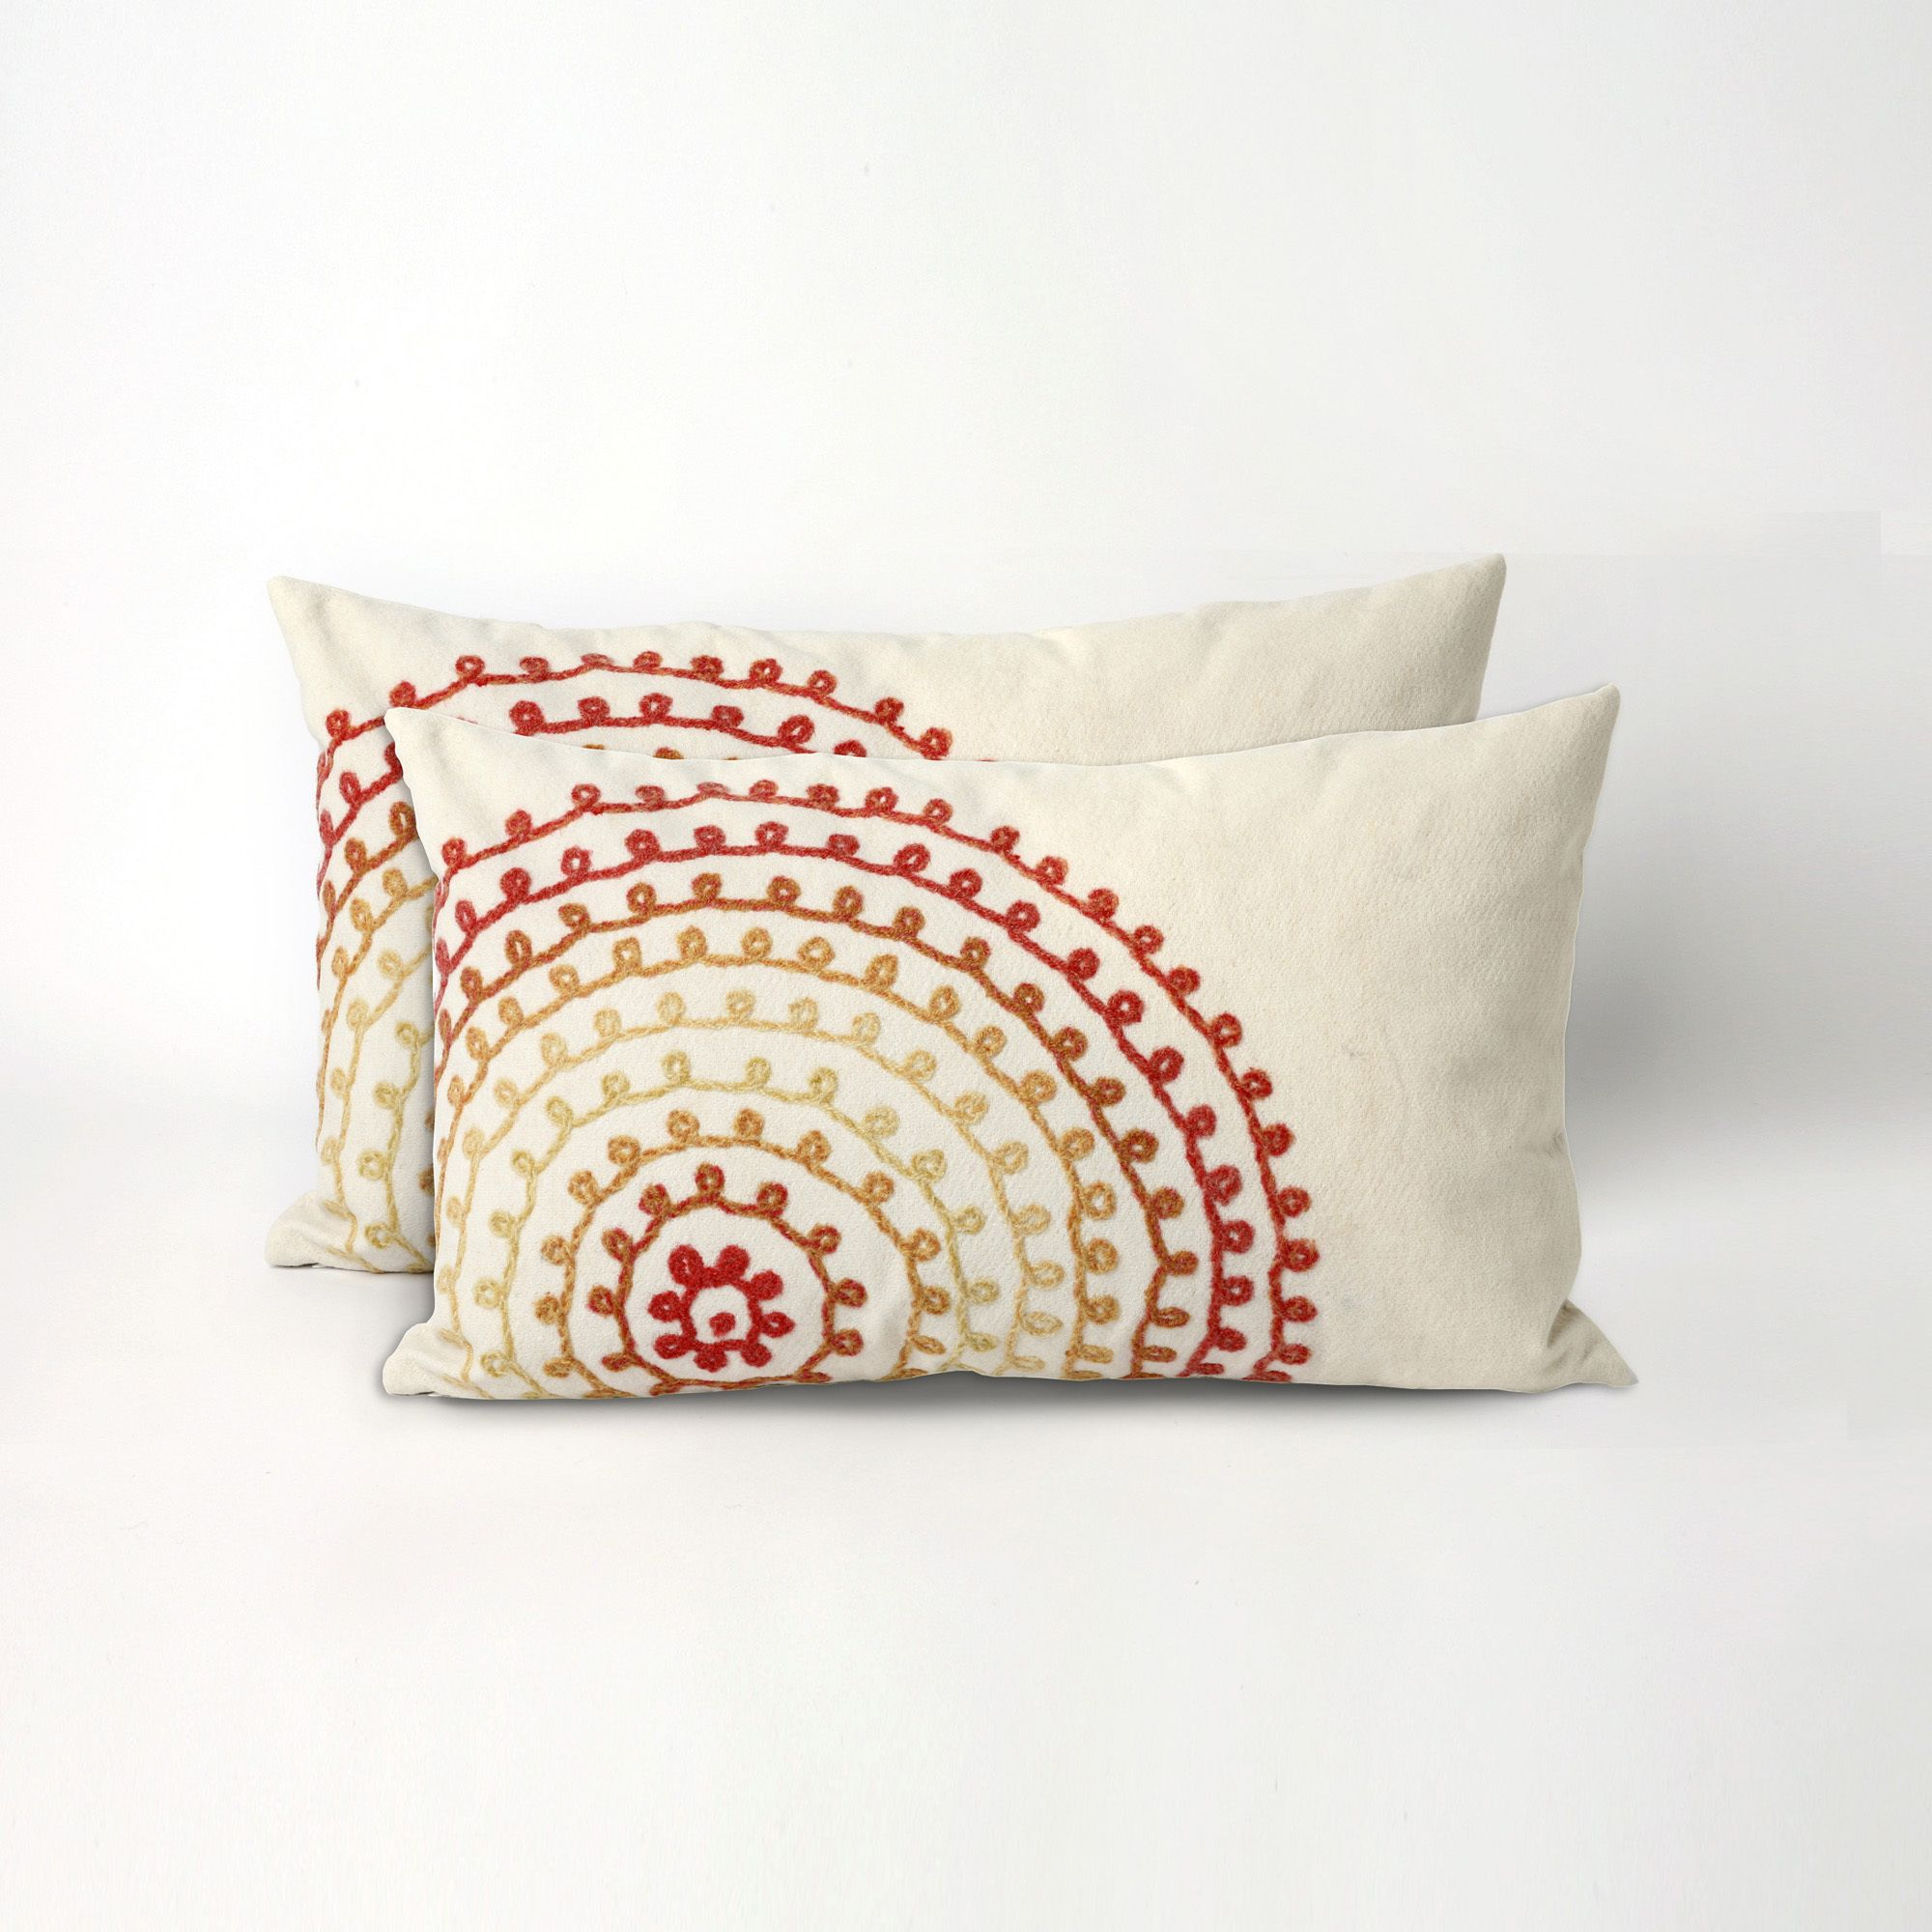 Add a stylish pop of color to your home with the Concentric Circles 20-inch Throw Pillow. These pillows feature a unique pattern with bright, warm colors that are sure to look great in your home.